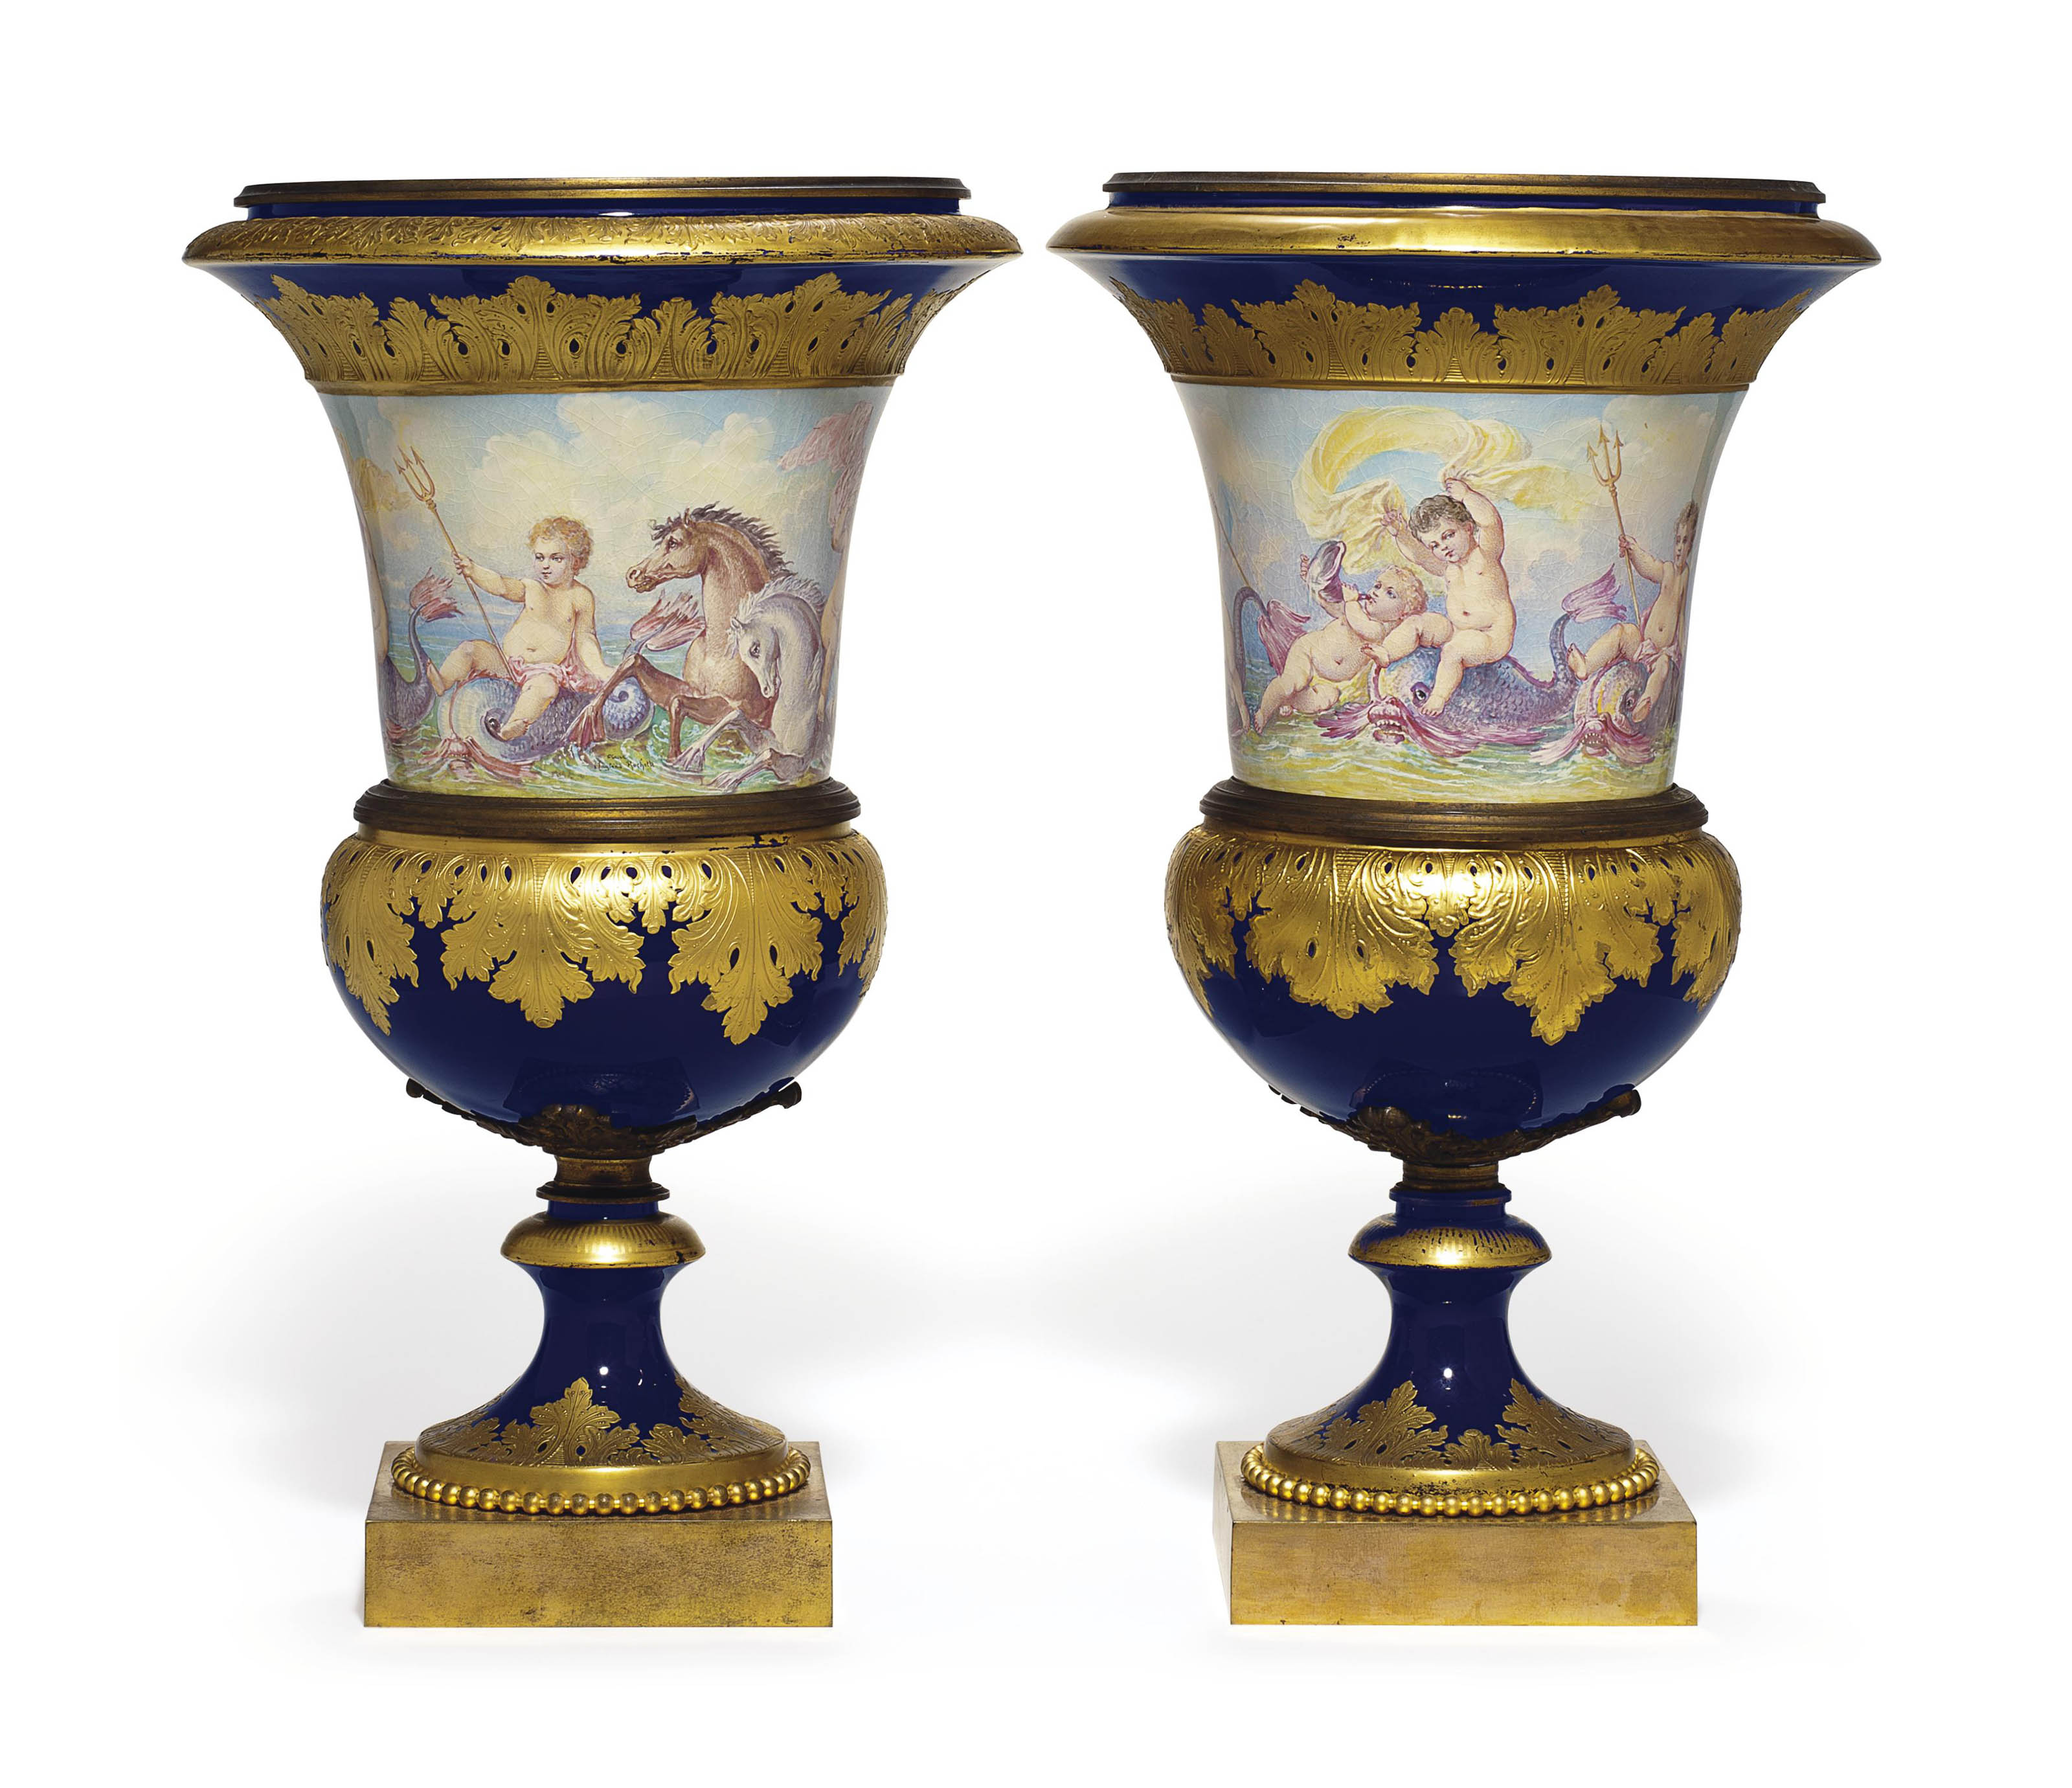 TWO GILT-METAL MOUNTED SEVRES STYLE PORCELAIN COBALT-BLUE GROUND CAMPANA VASES